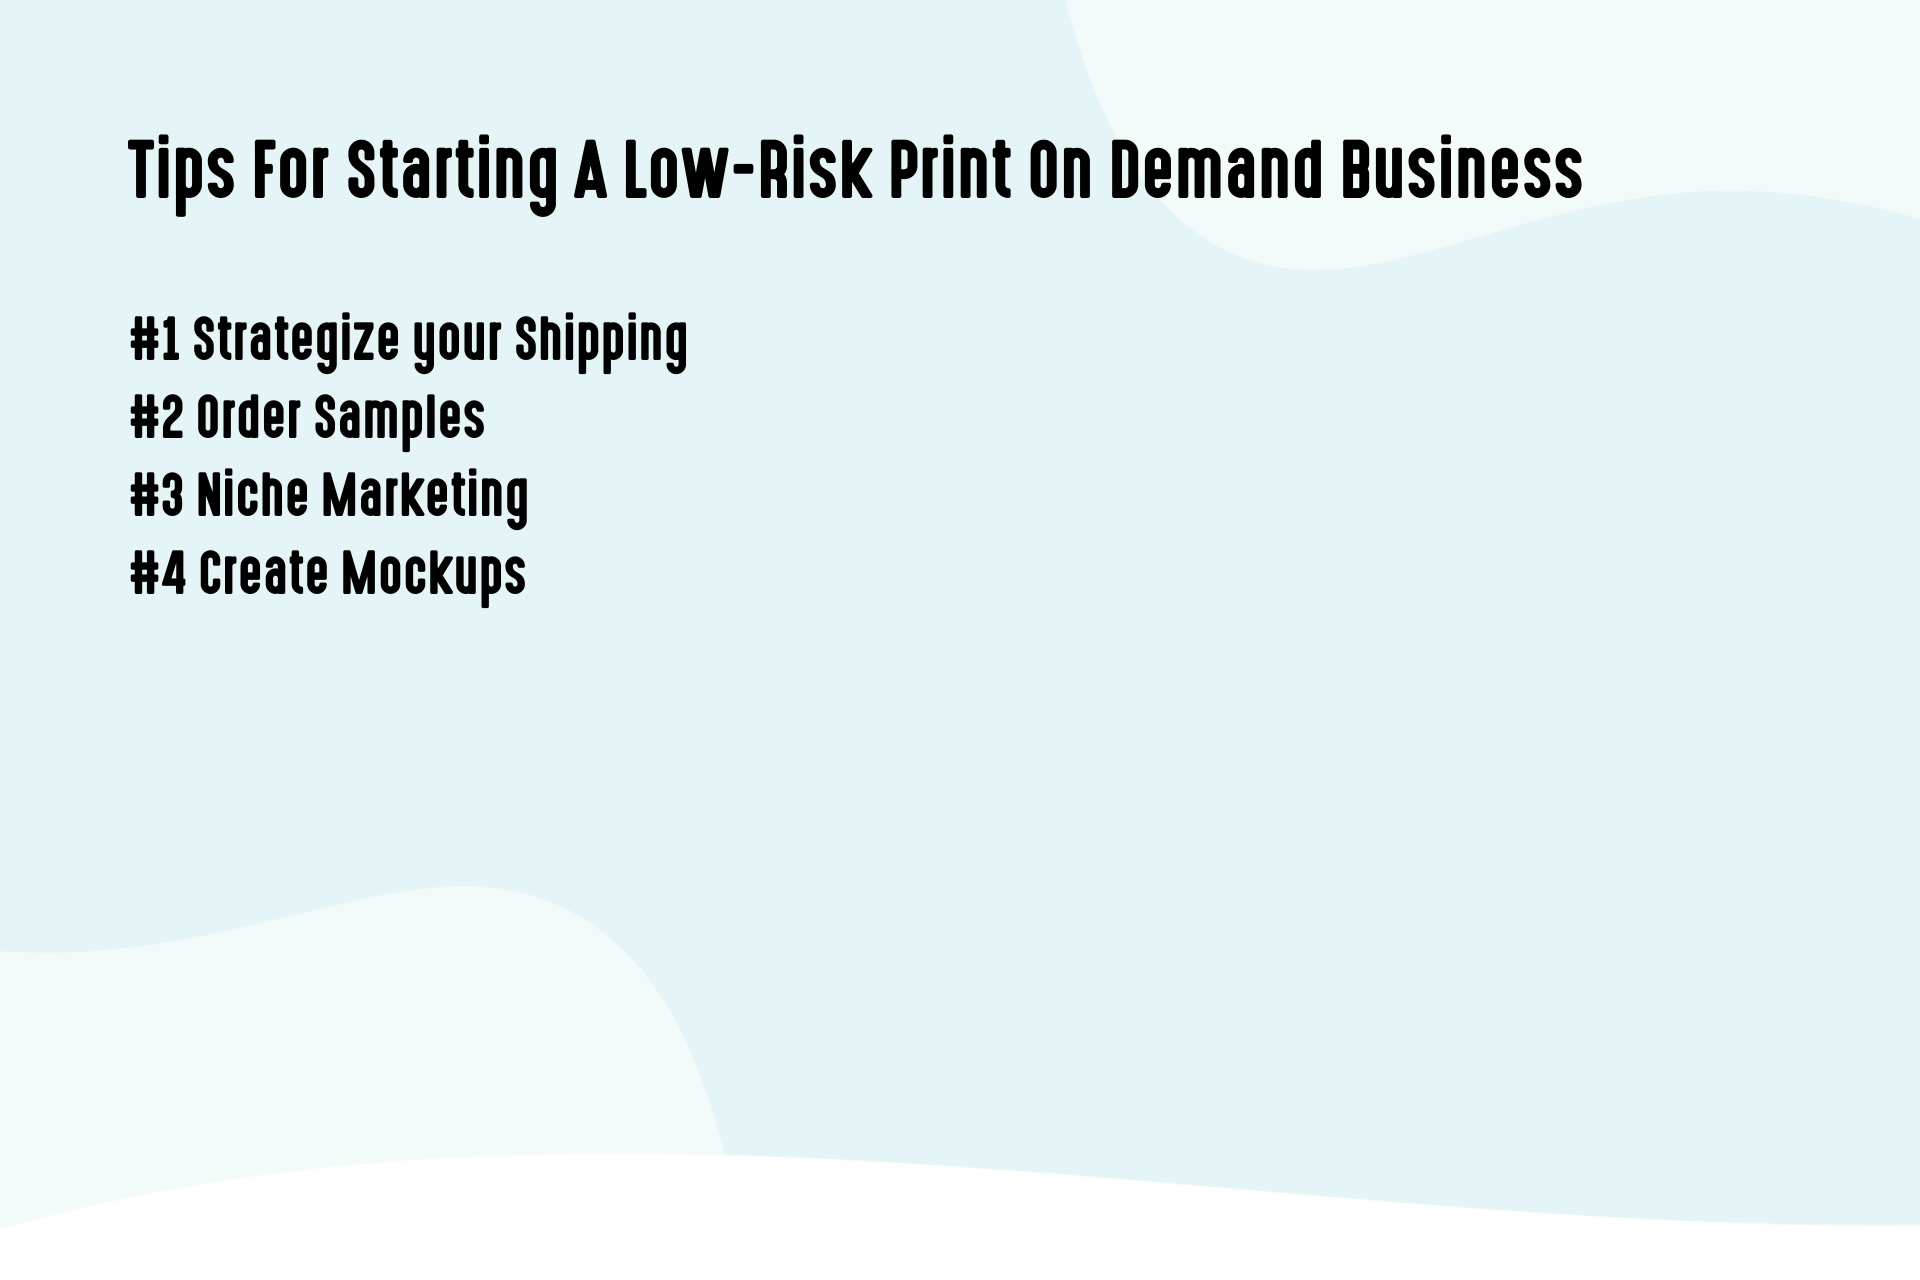 Tips For Starting A Low-Risk Print On Demand Business